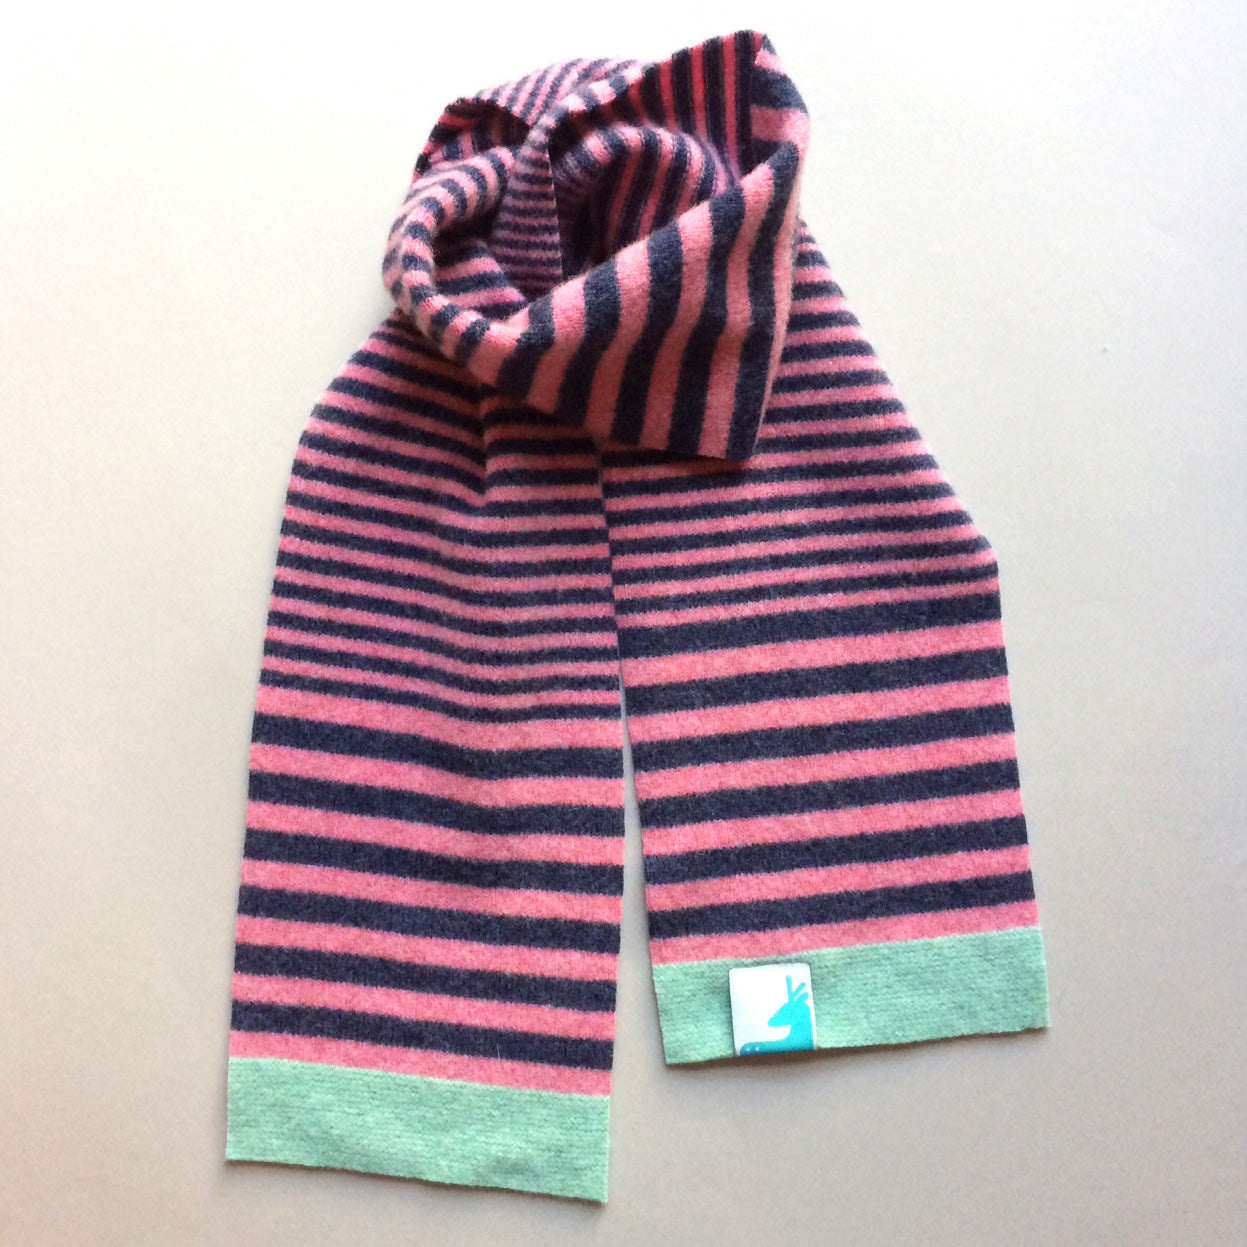 Quinn Scarf - Striped Lambswool Kids Scarf - Pink